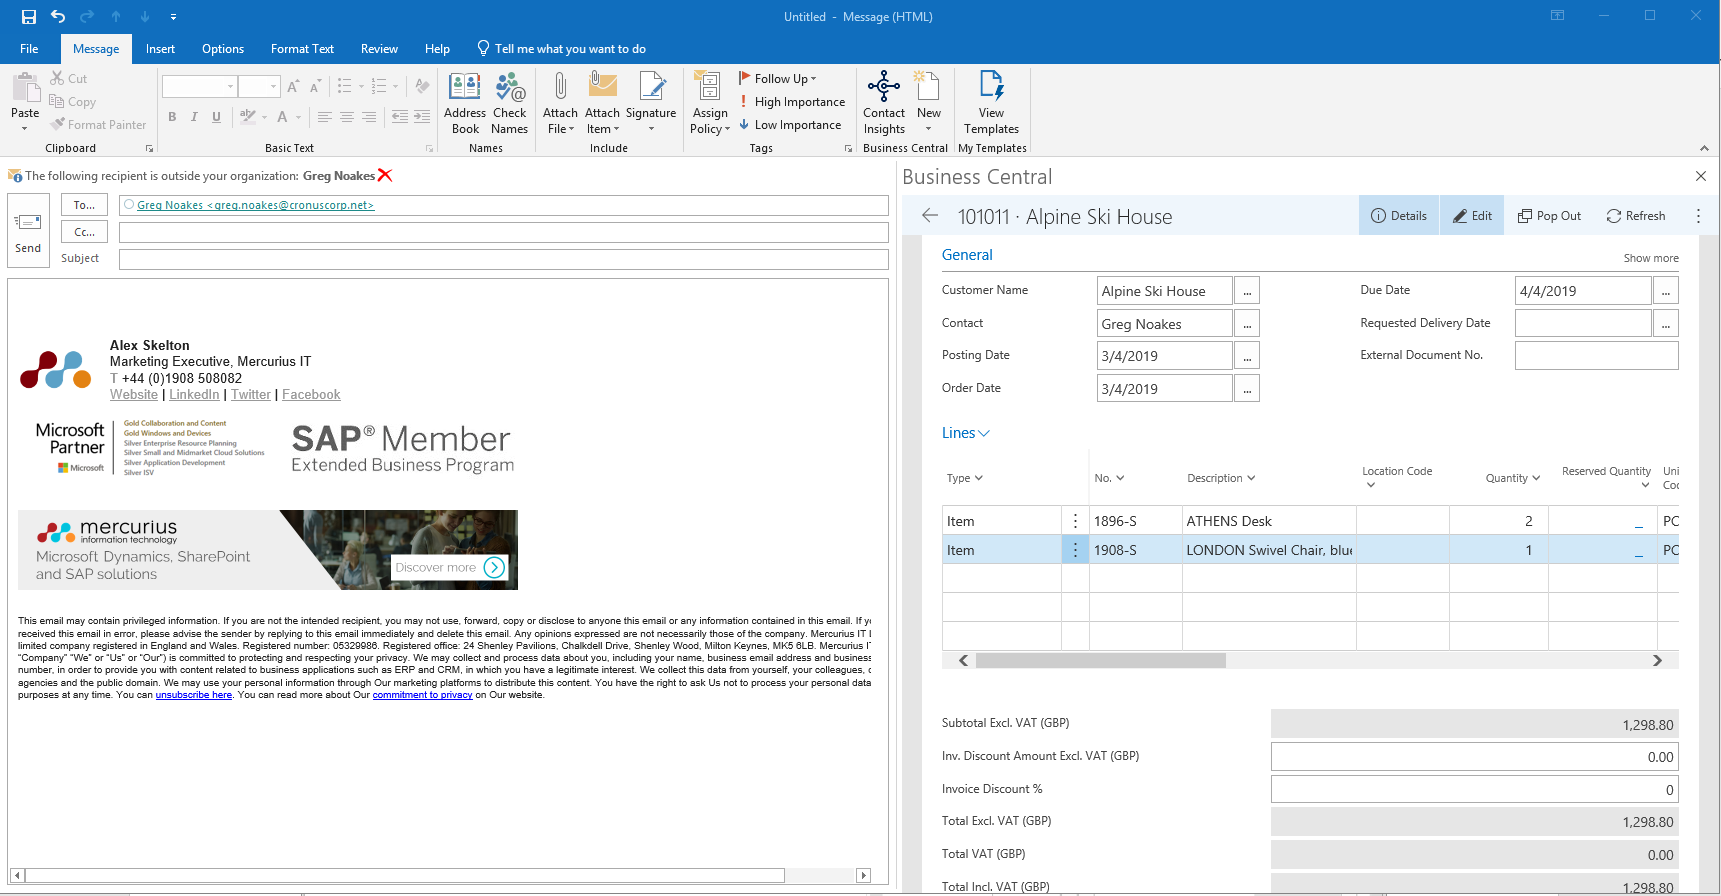 How to: Installing the Outlook add-in for Microsoft Dynamics